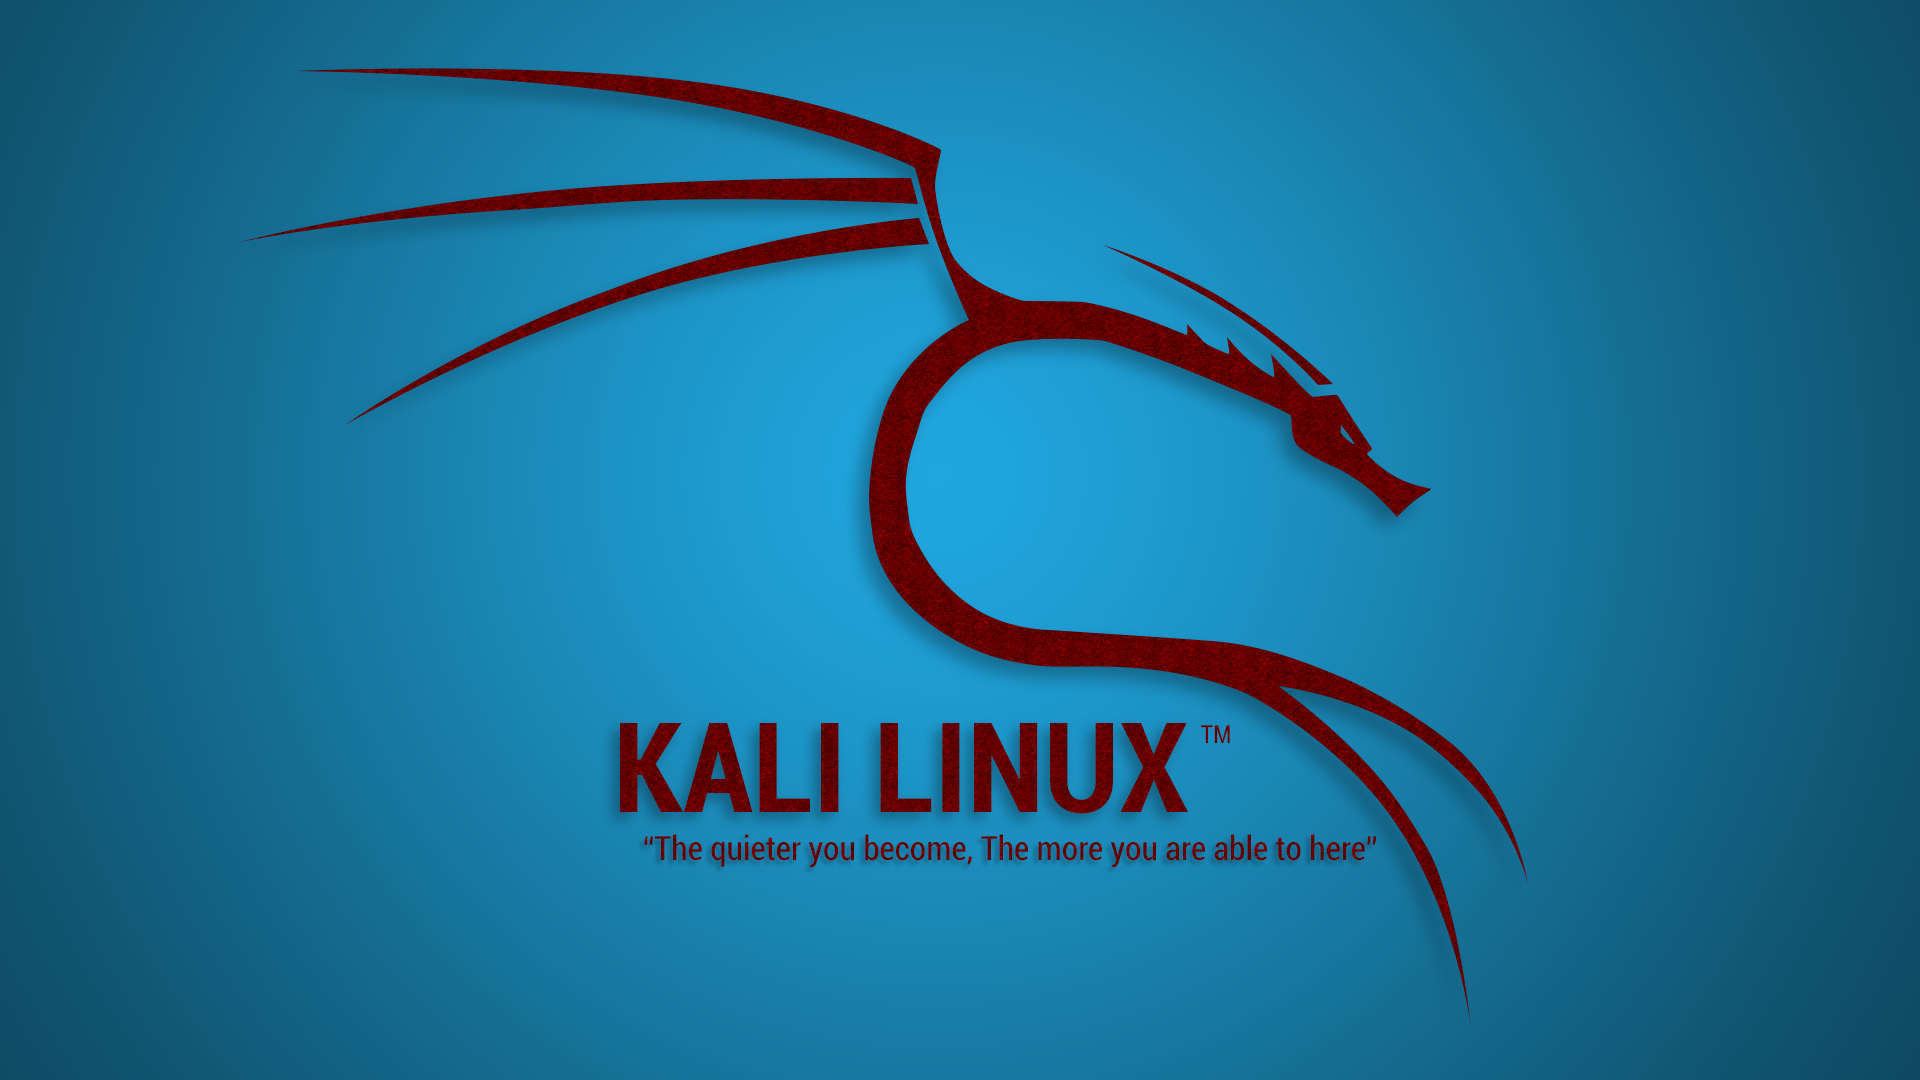 The 5 most popular Kali Linux programs